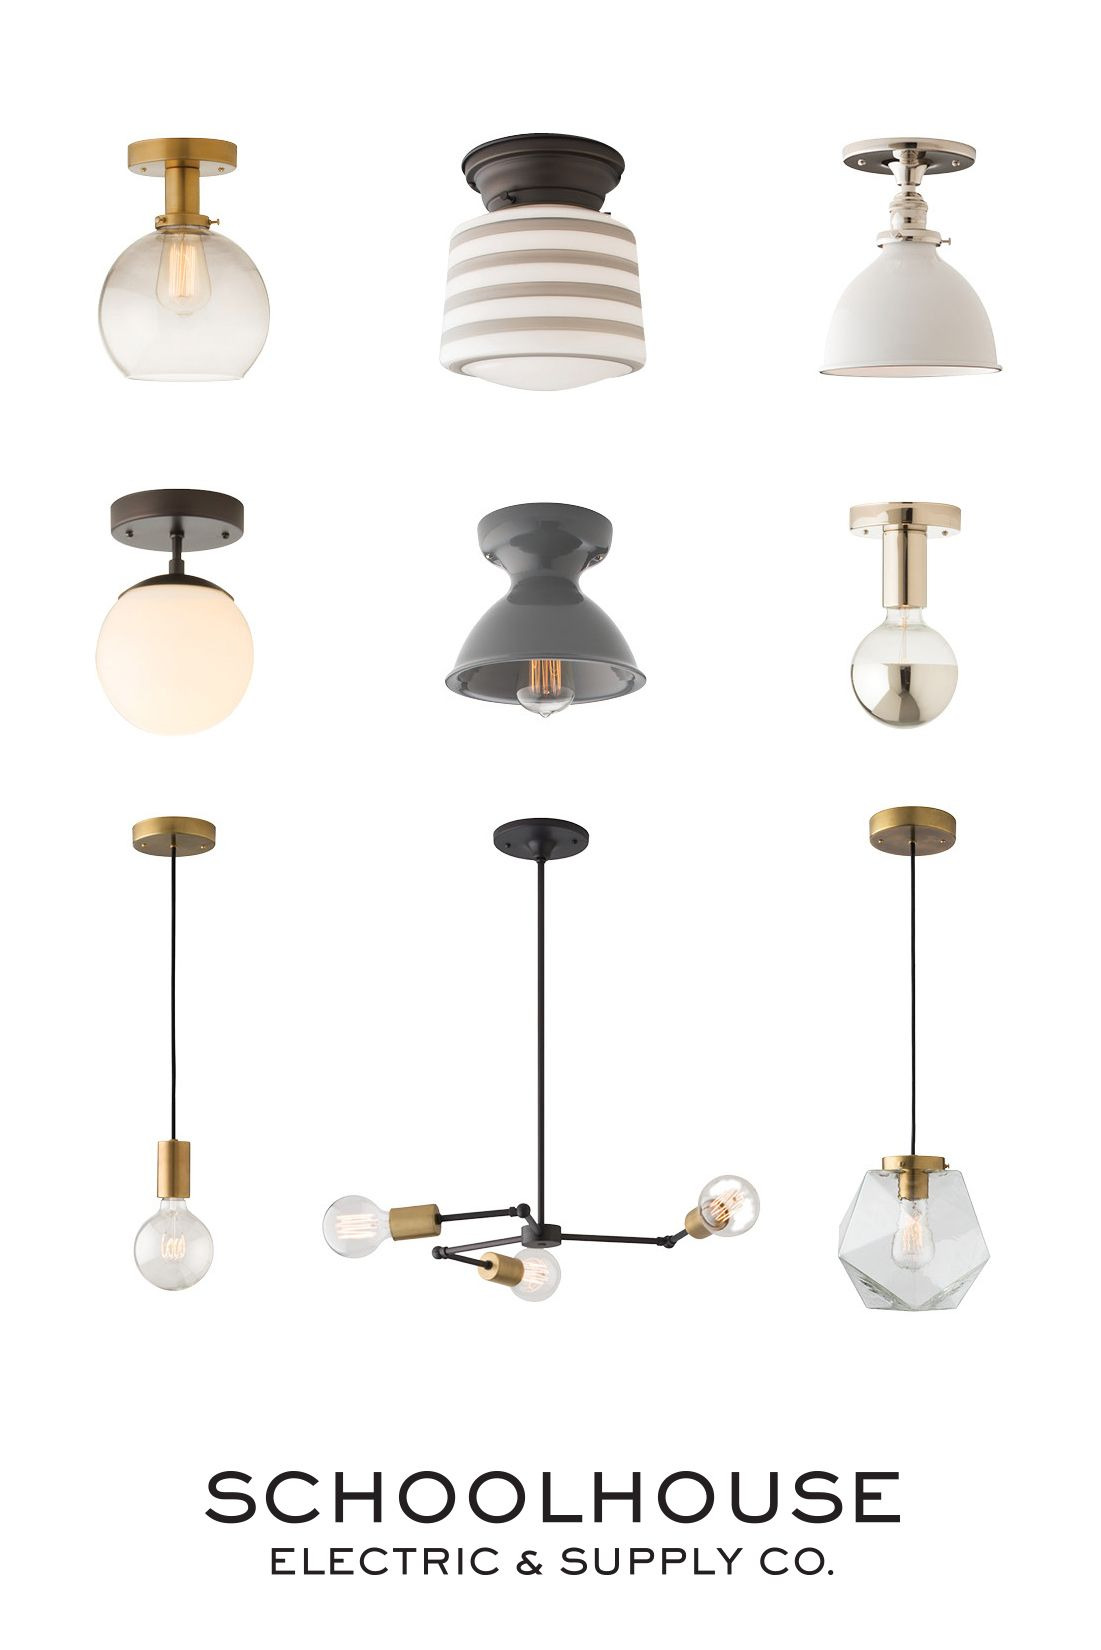 Modern minimalist vintage inspired and iconic light fixtures hand crafted in portland or find your favorite at schoolhouse electric and shop our new